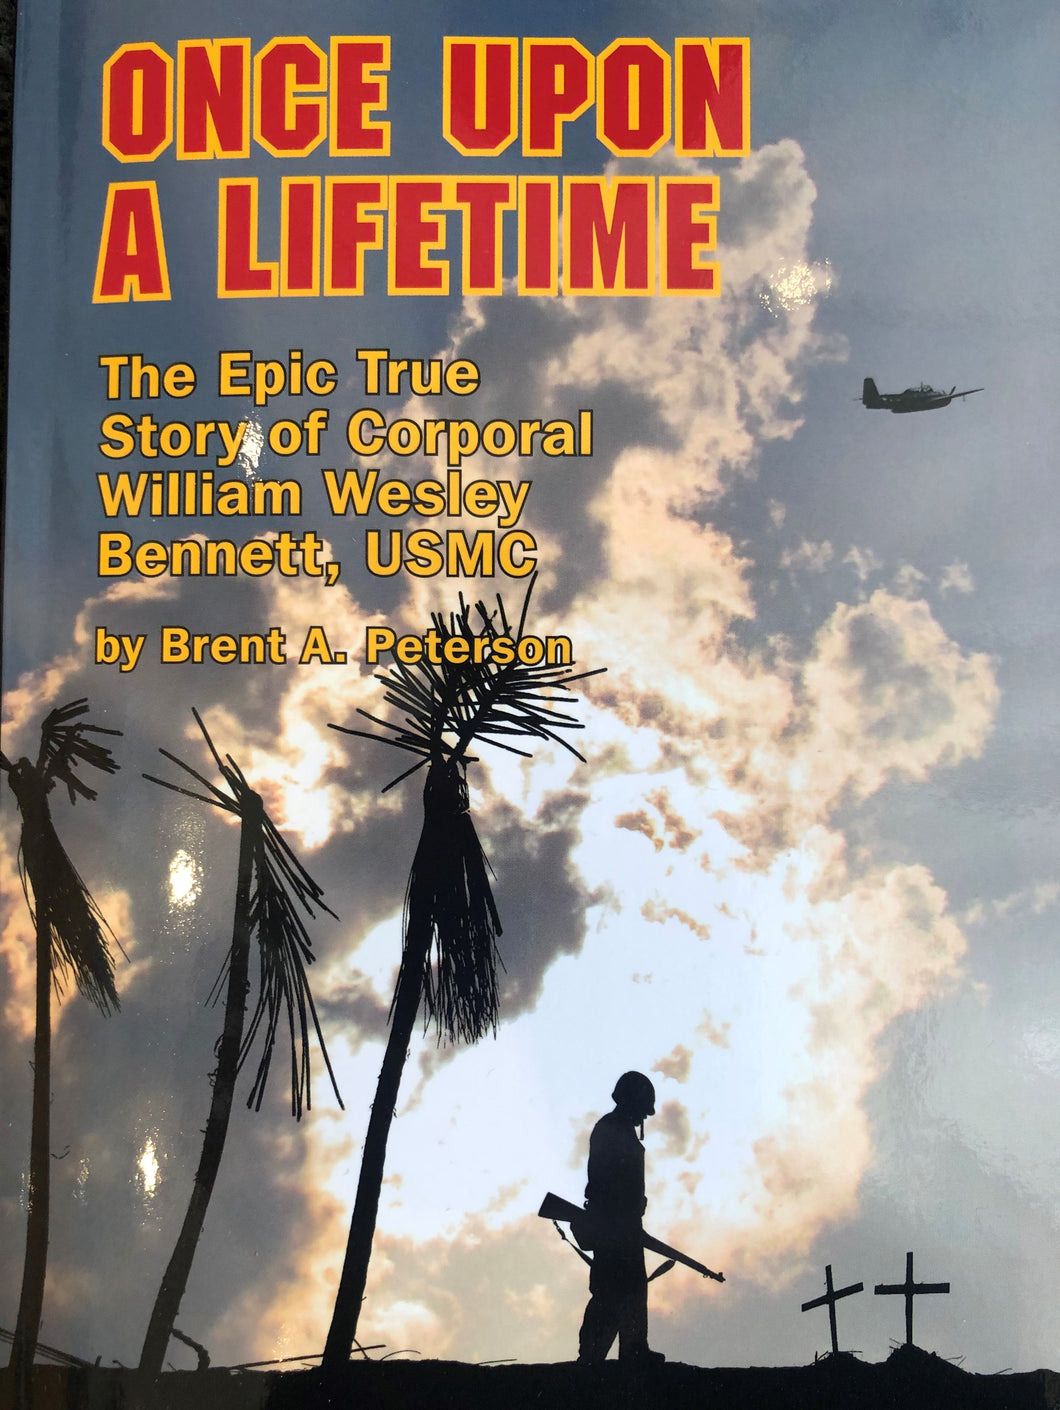 Once Upon a Lifetime: The Epic True Story of Corporal William Wesley Bennett, USMC by Brent A. Peterson